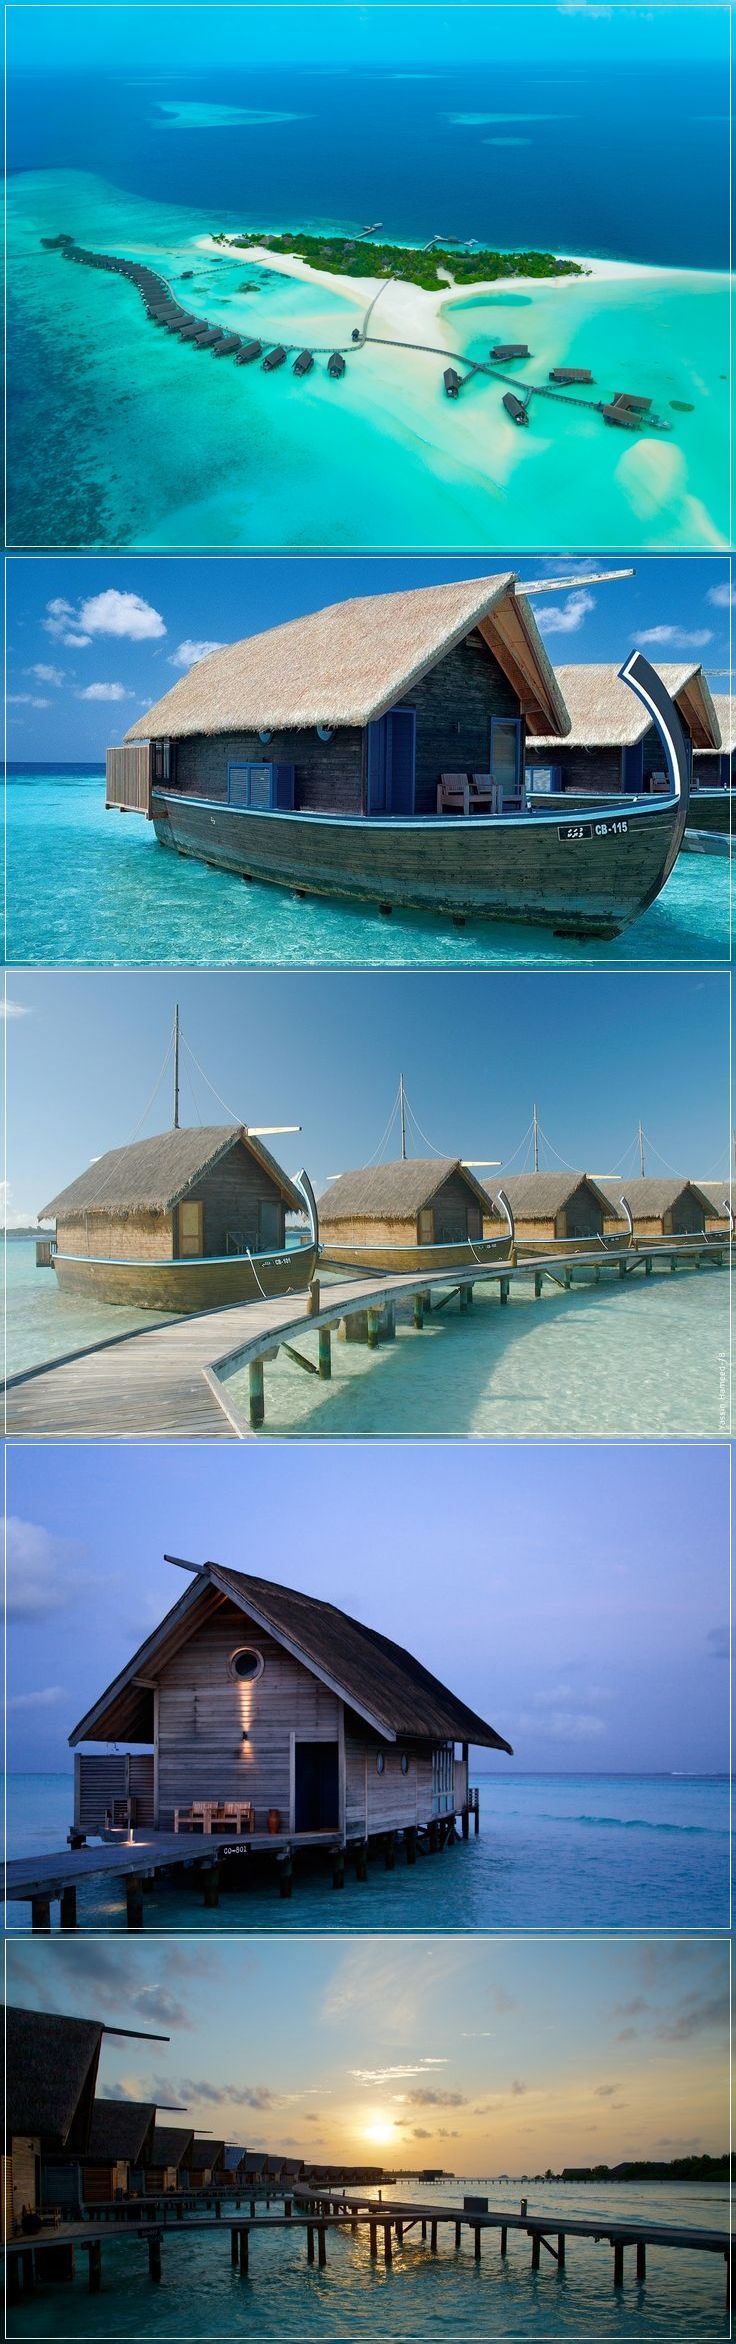 Cocoa Island Resort in the Maldives. http://www.comohotels.com/cocoaisland/